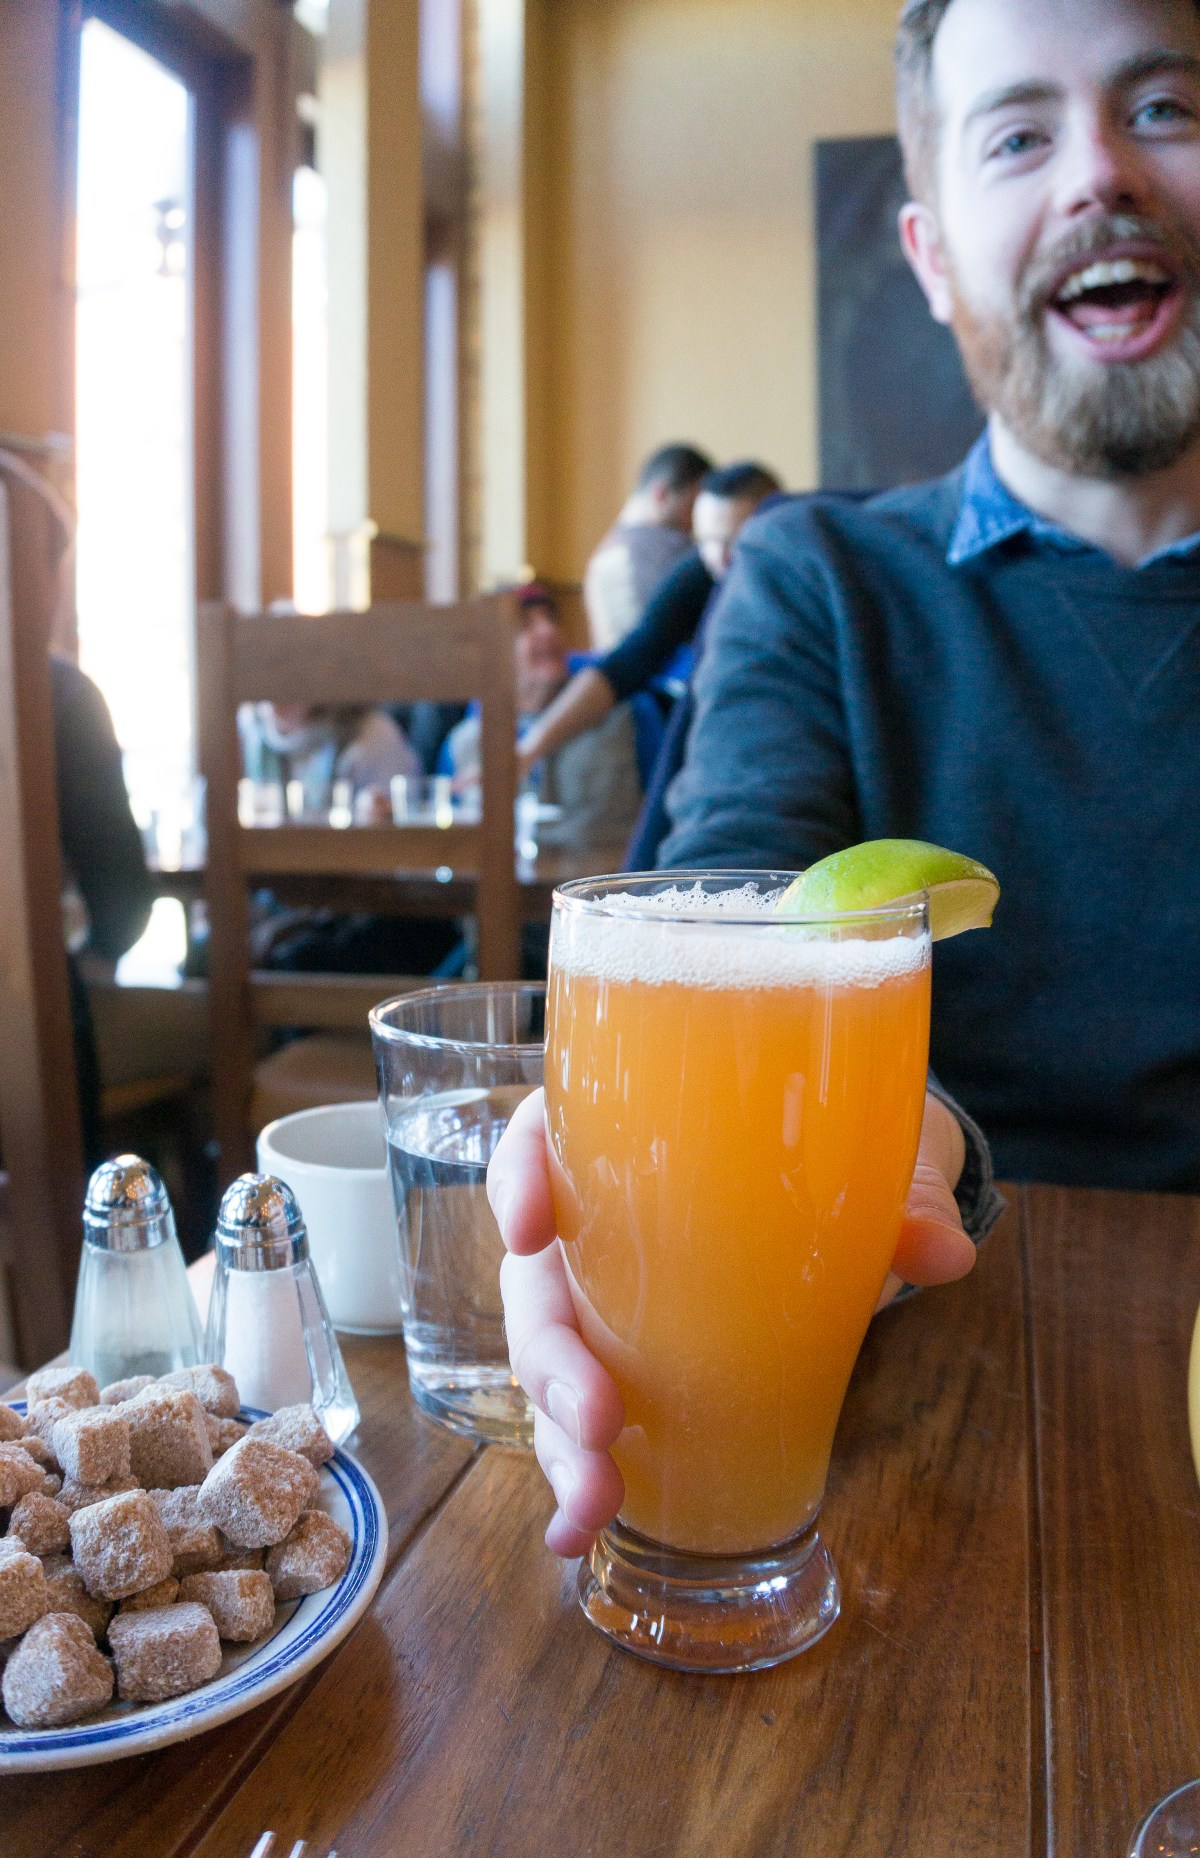 72 Hours in Chicago beers at The Publican